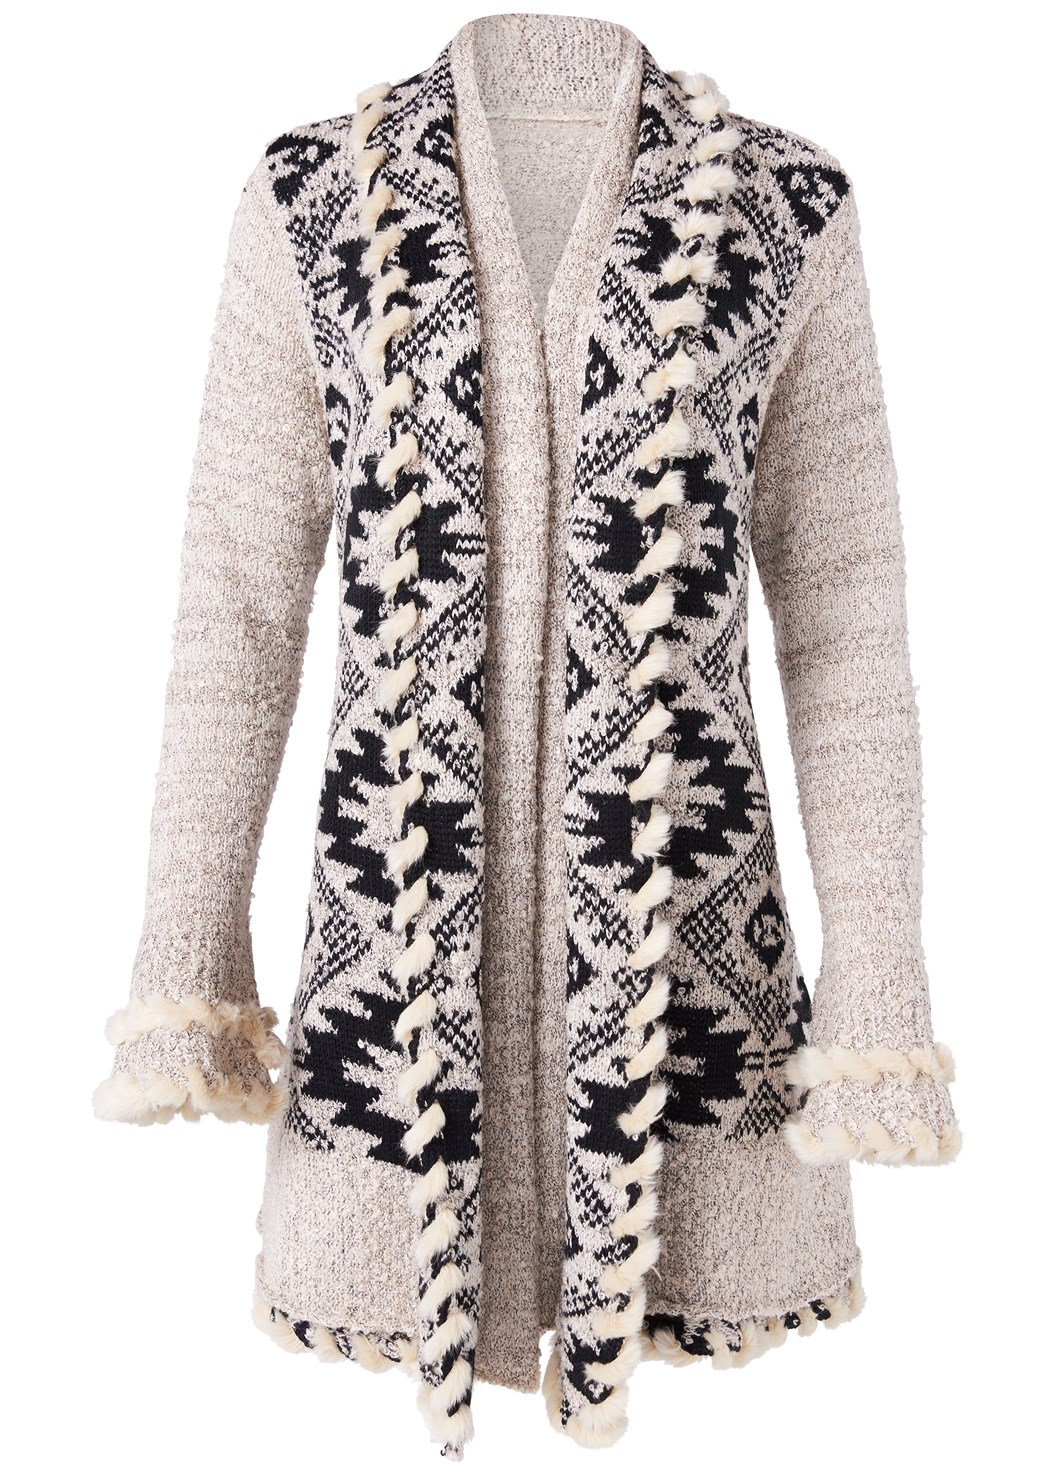 Mixed Print Duster,Mid Rise Color Skinny Jeans,Fringe Scarf